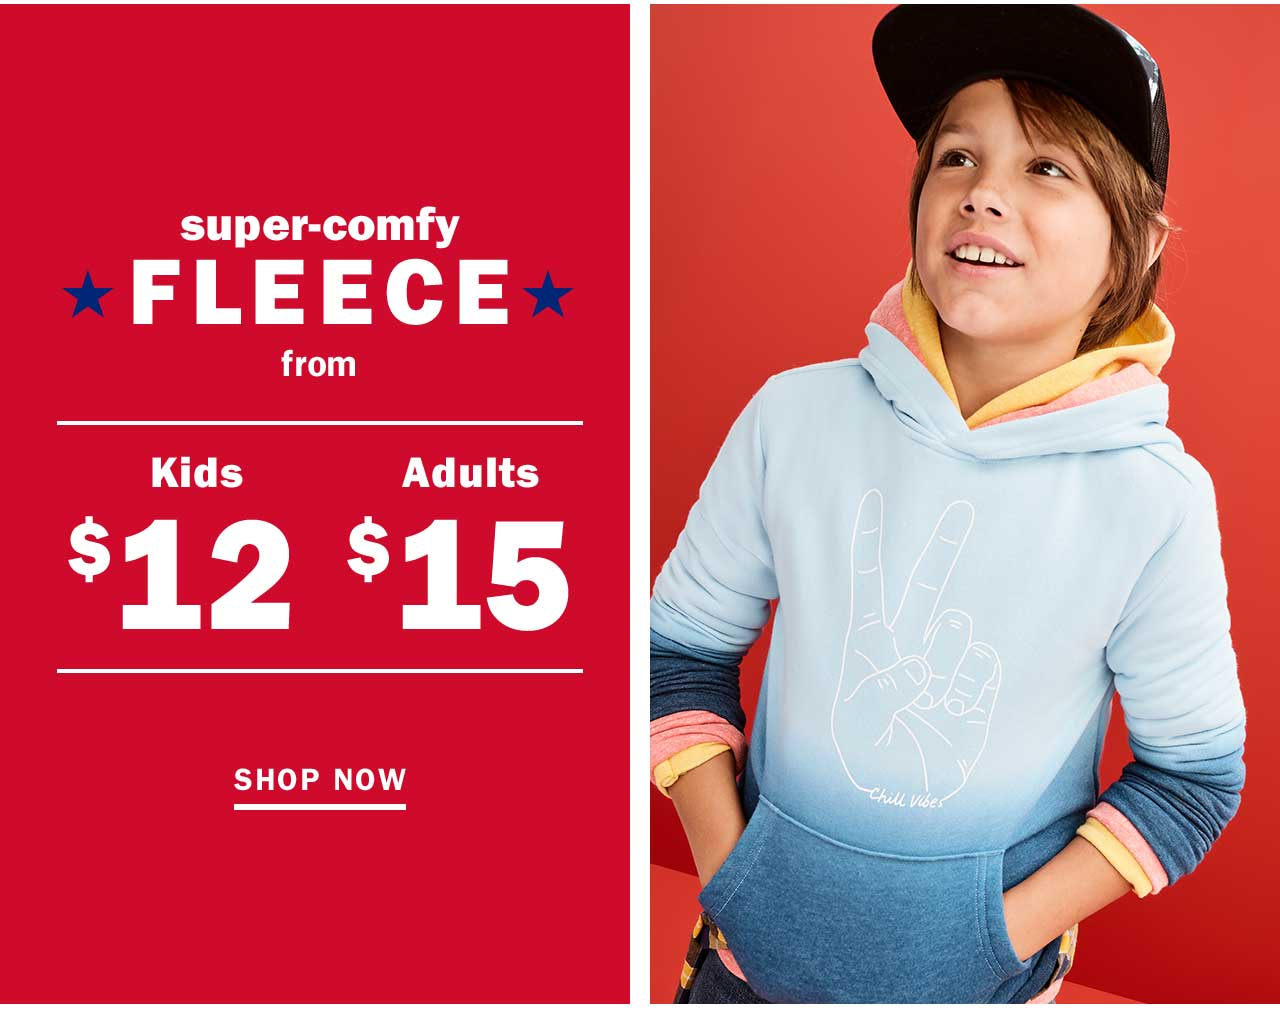 super-comfy FLEECE | SHOP NOW